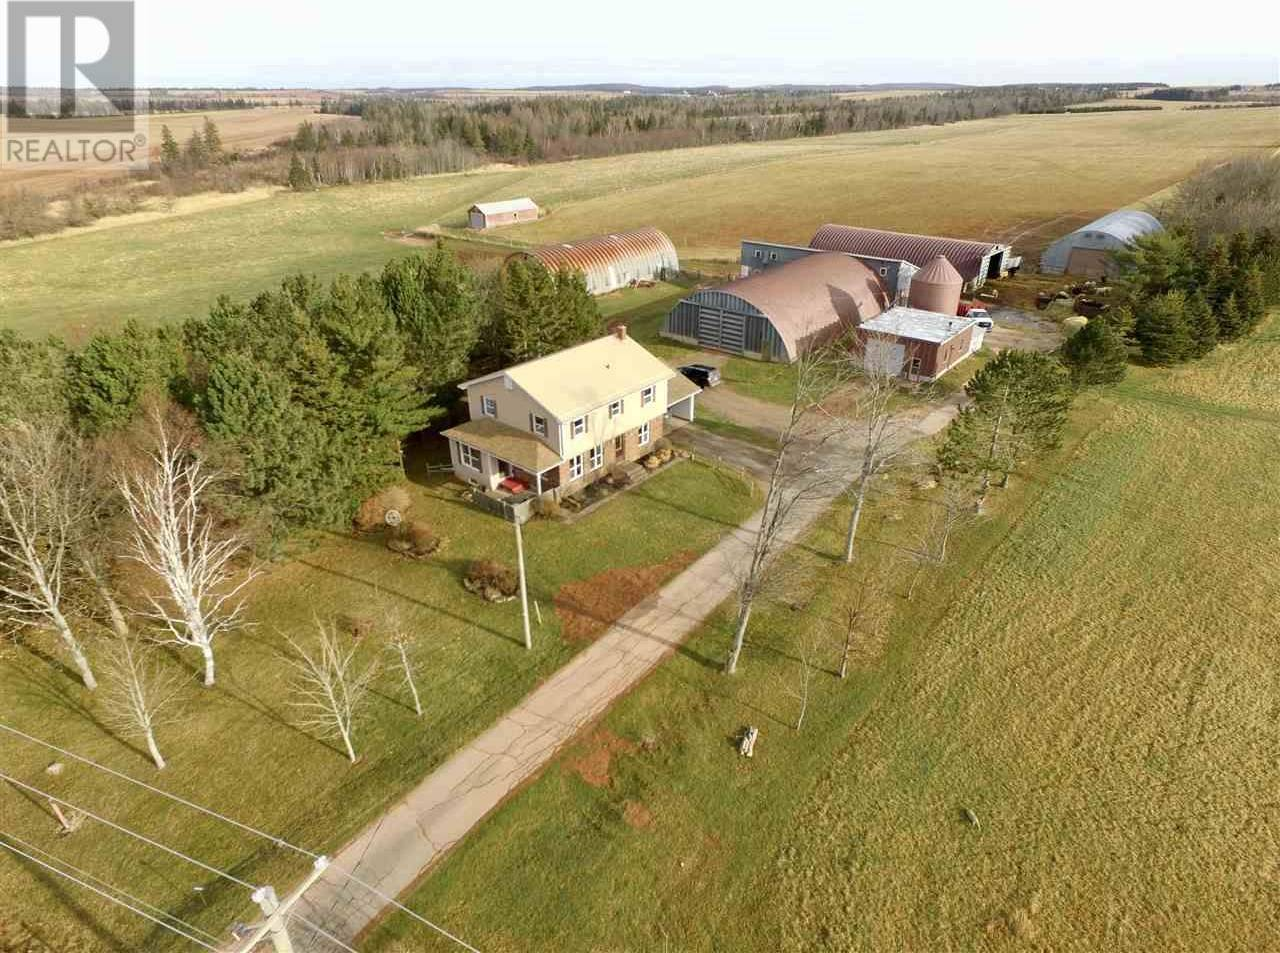 Residential property for sale at  492 Rte Kensington Prince Edward Island - MLS: 201926171